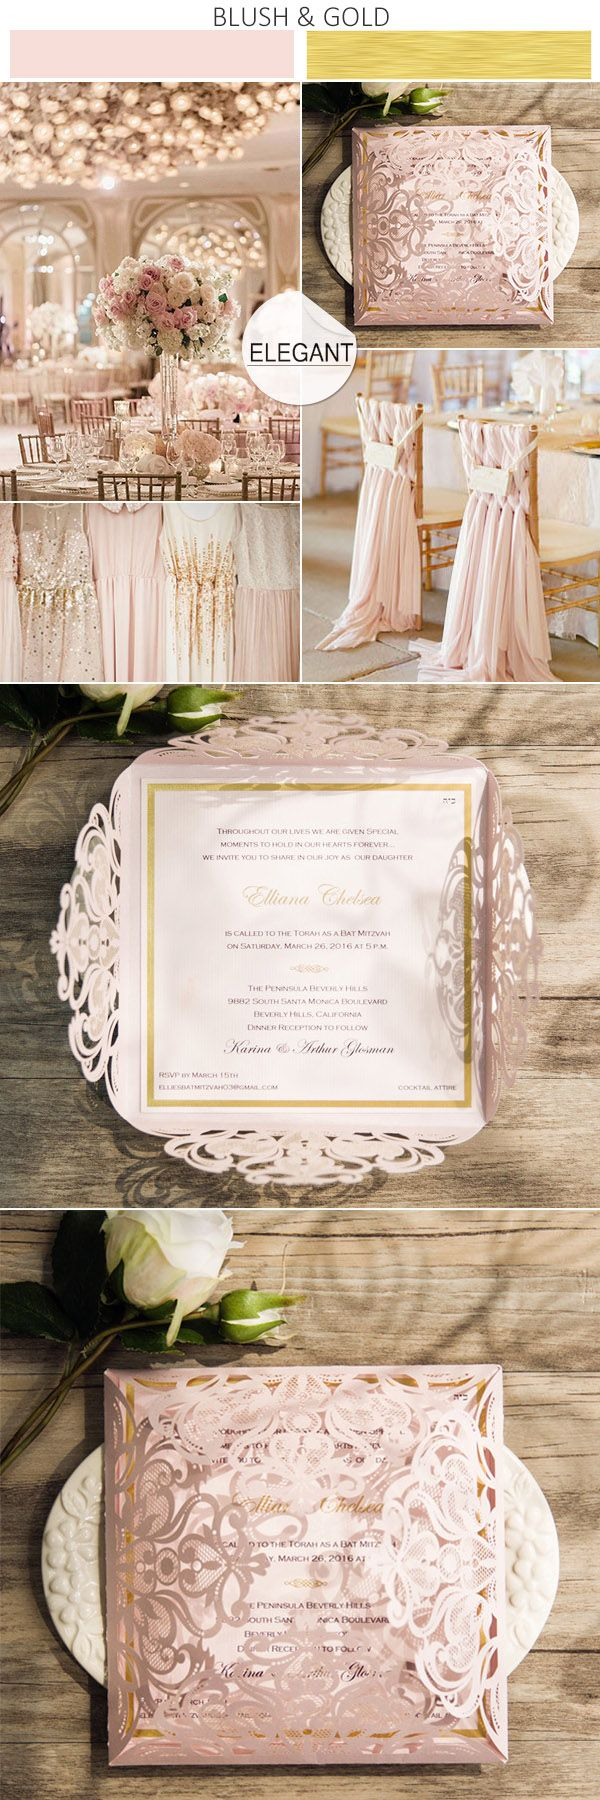 Best 25+ Rose gold wedding invitation ideas on Pinterest | Grey ...